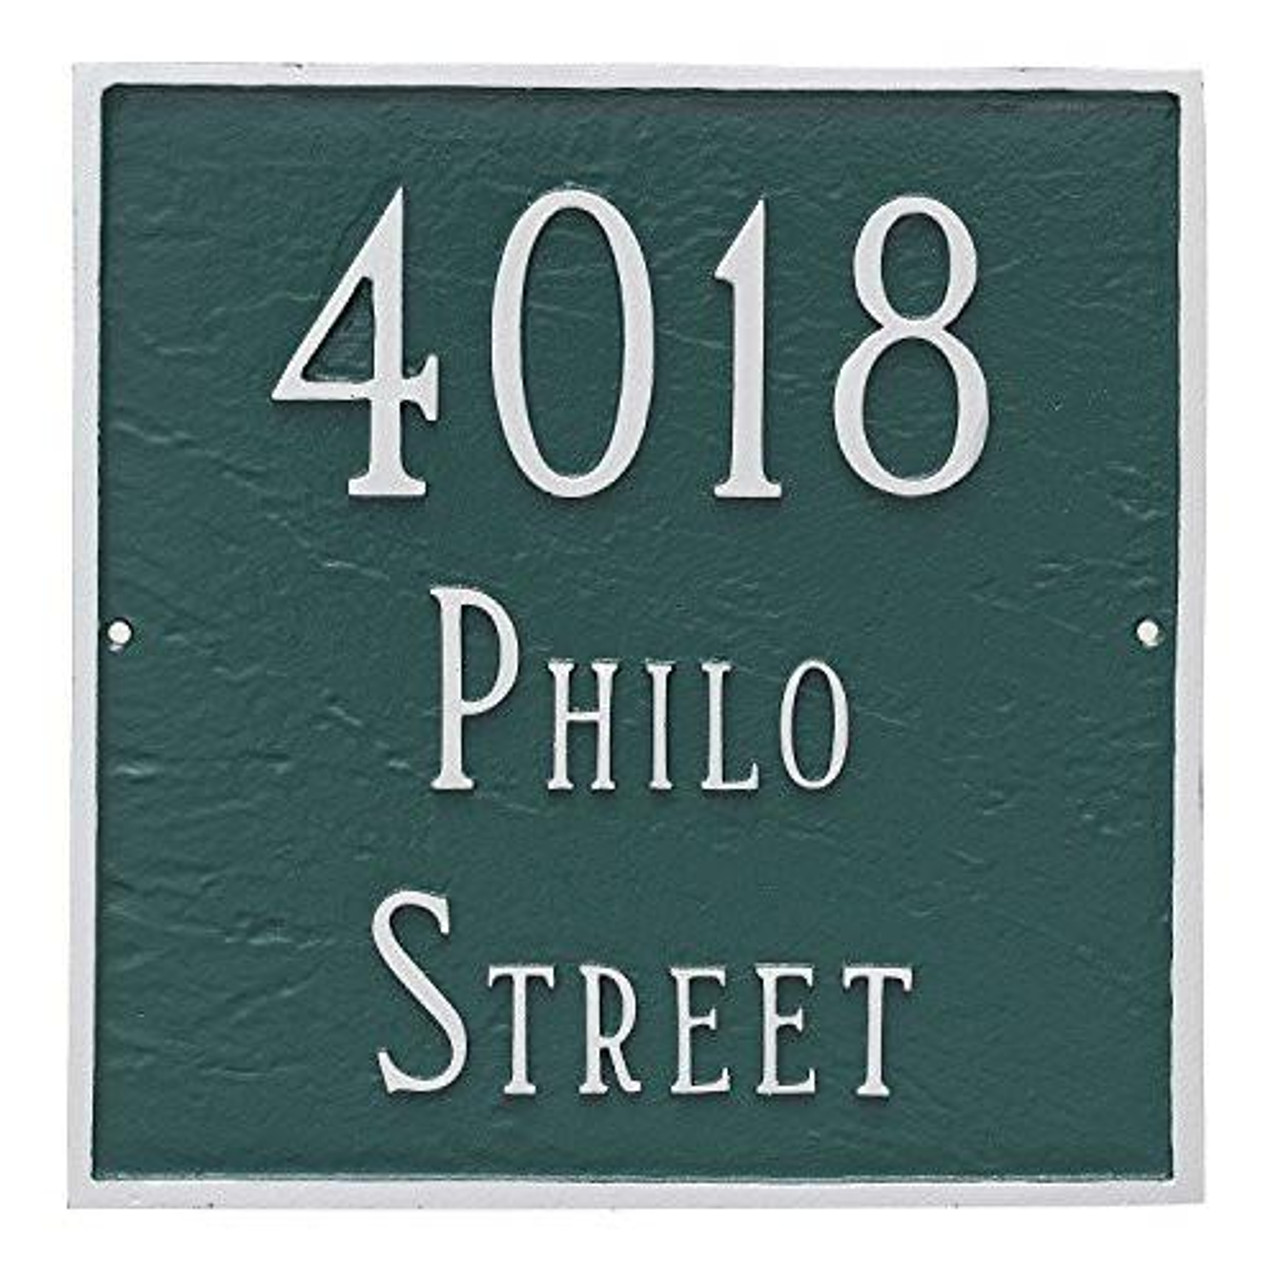 Large Address House Number Plaque. Shown here in Hunter Green/Silver displaying street address.